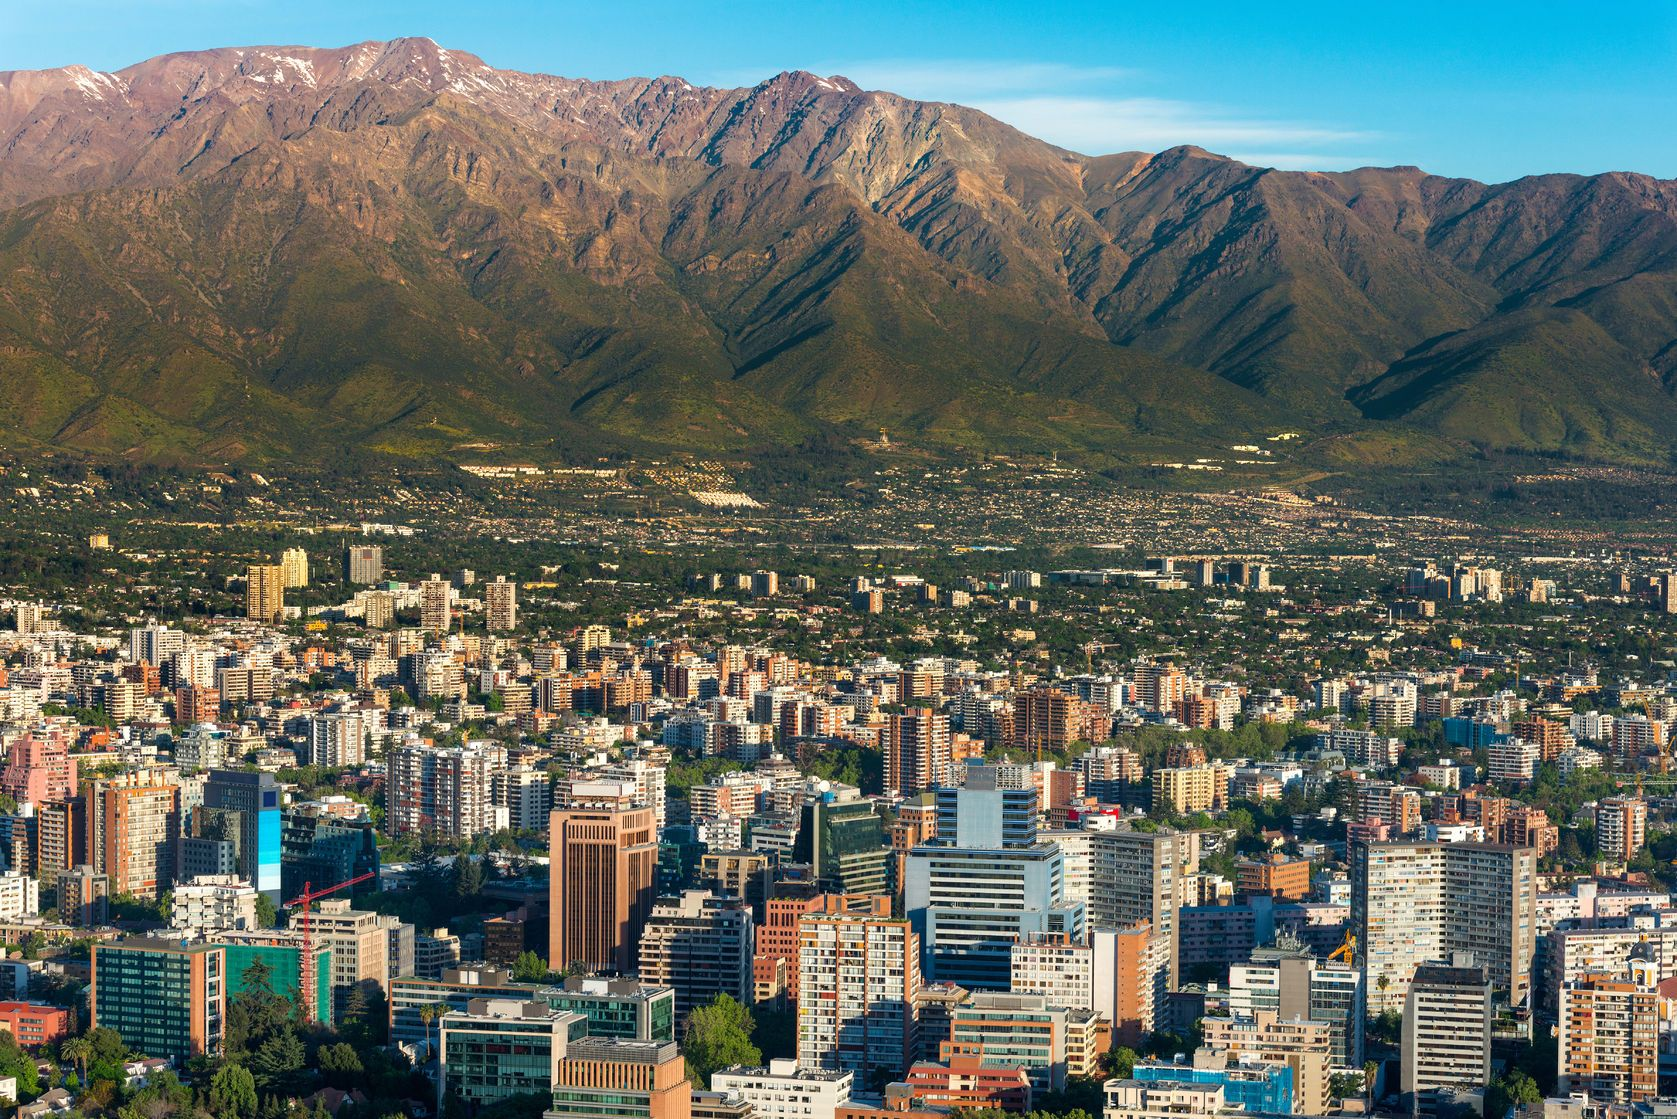 Panoramatický výhled na Santiago de Chile | tifonimages/123RF.com